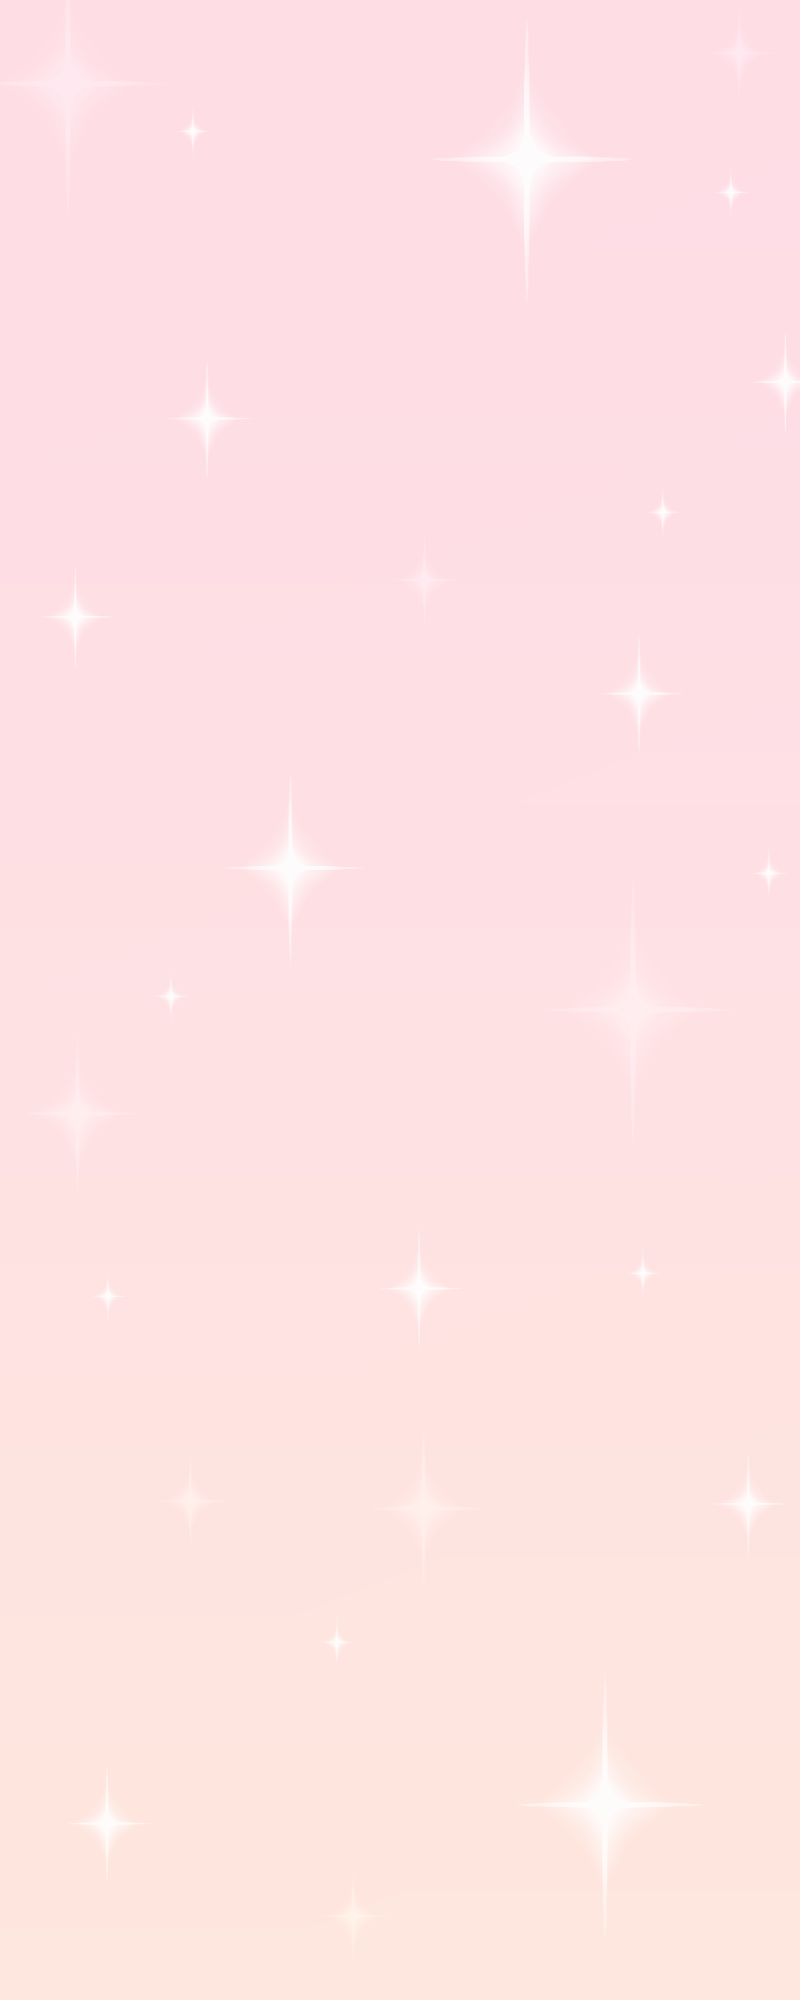 Completely Free Background Check >> Pastel Sparkle Background Pink (F2U!) by DominickLuhr on DeviantArt